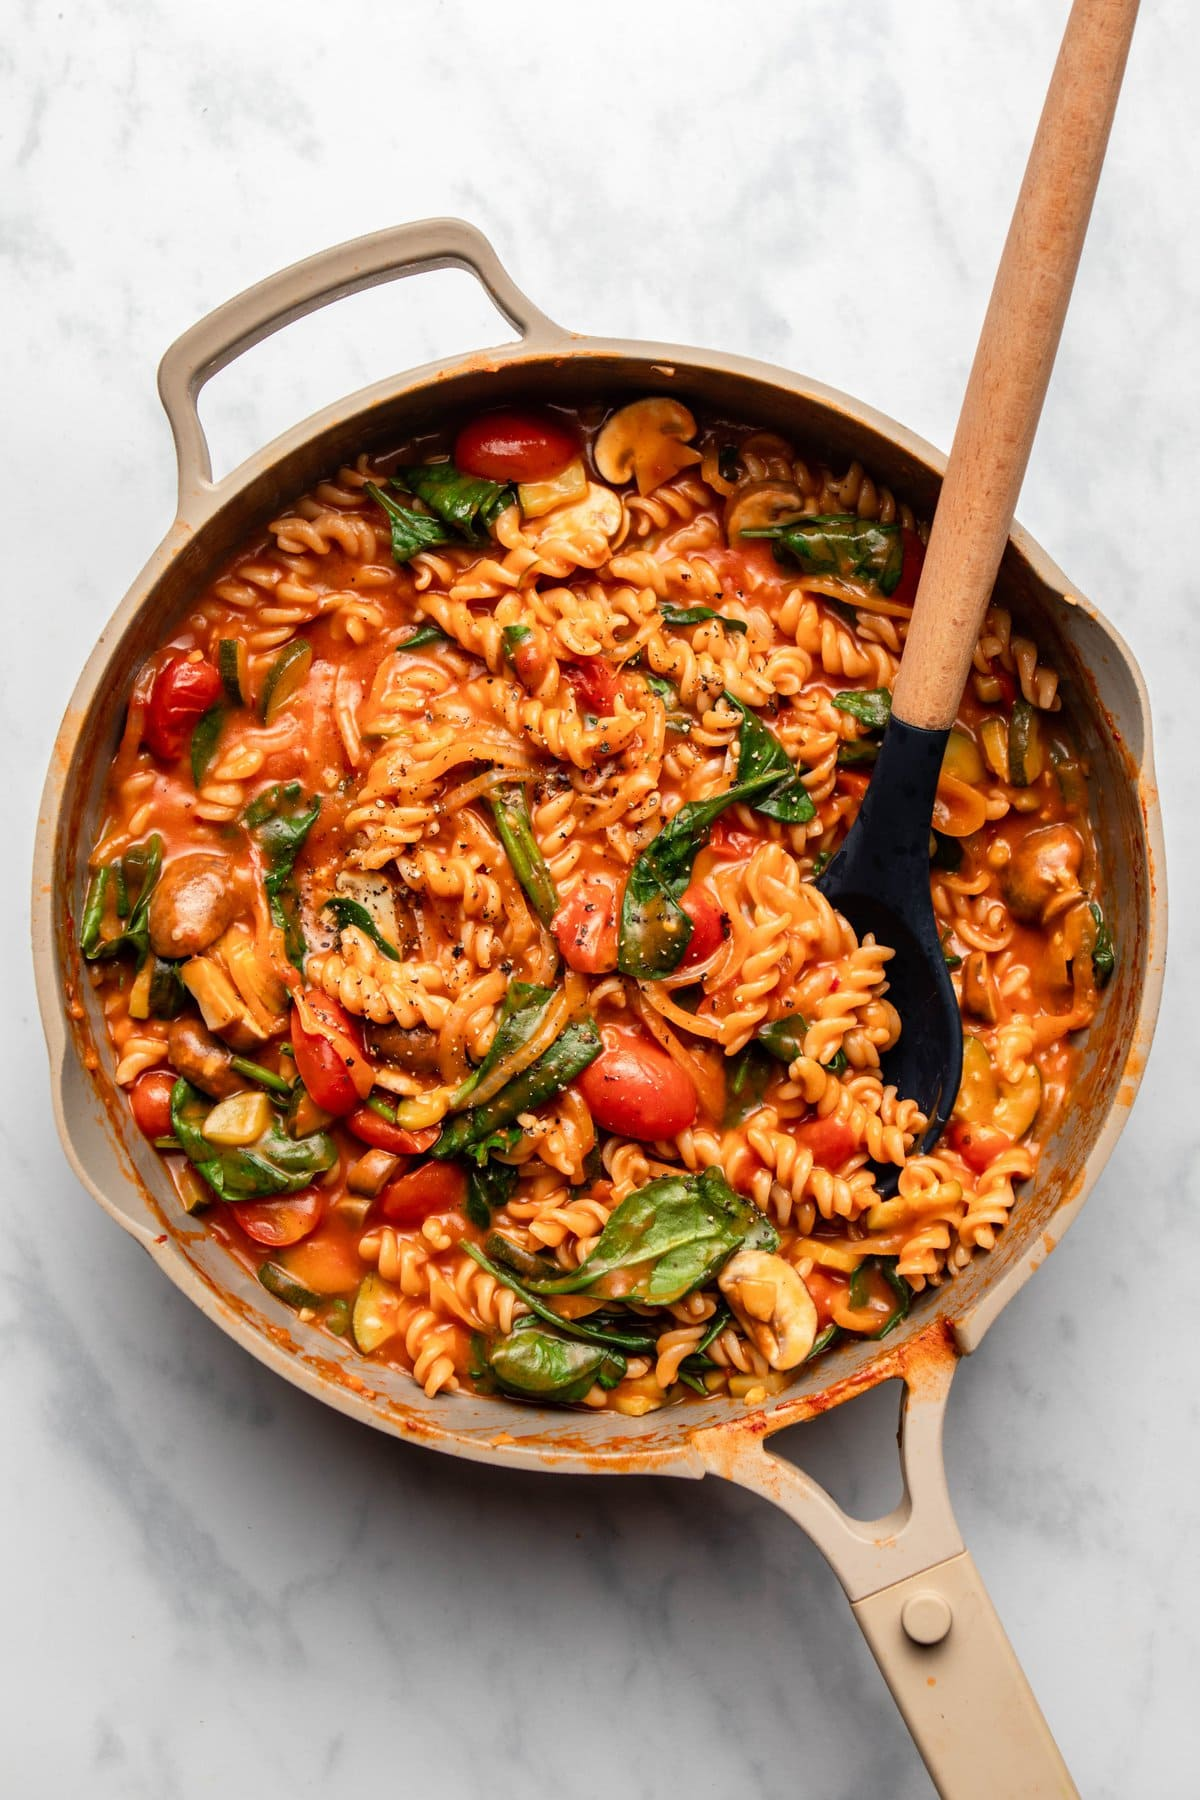 pan of cooked one pot pasta with red sauce on marble background